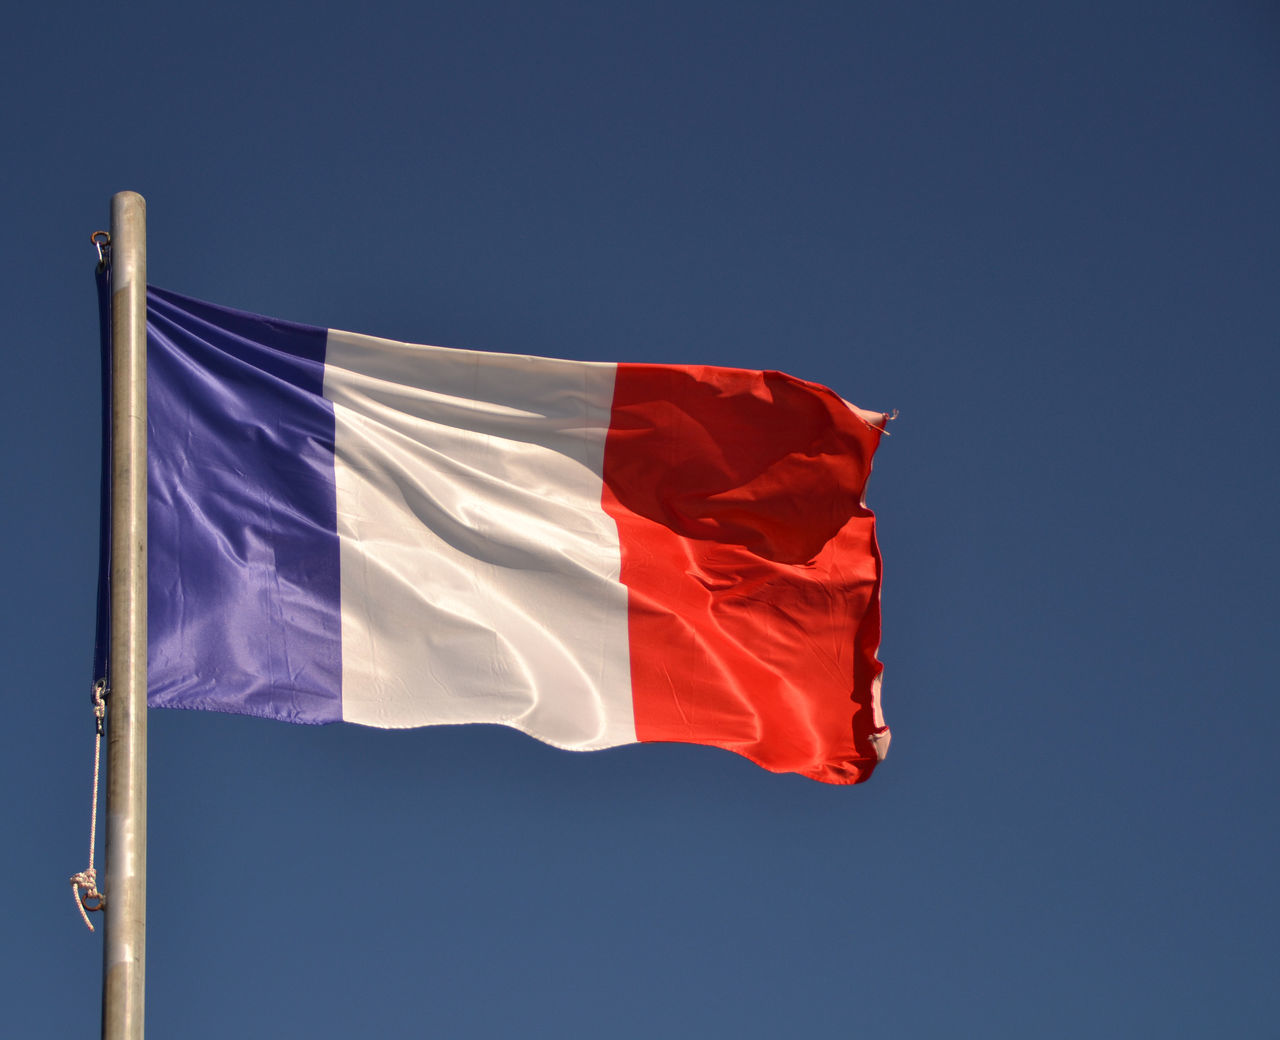 View of France flag waving Blue Clear Sky Colors Continent Countries Country Europe European  Flag France French International Nation National Outdoors Patriotism Red Red Sign Sky Symbol Travel Wave Waving White Color